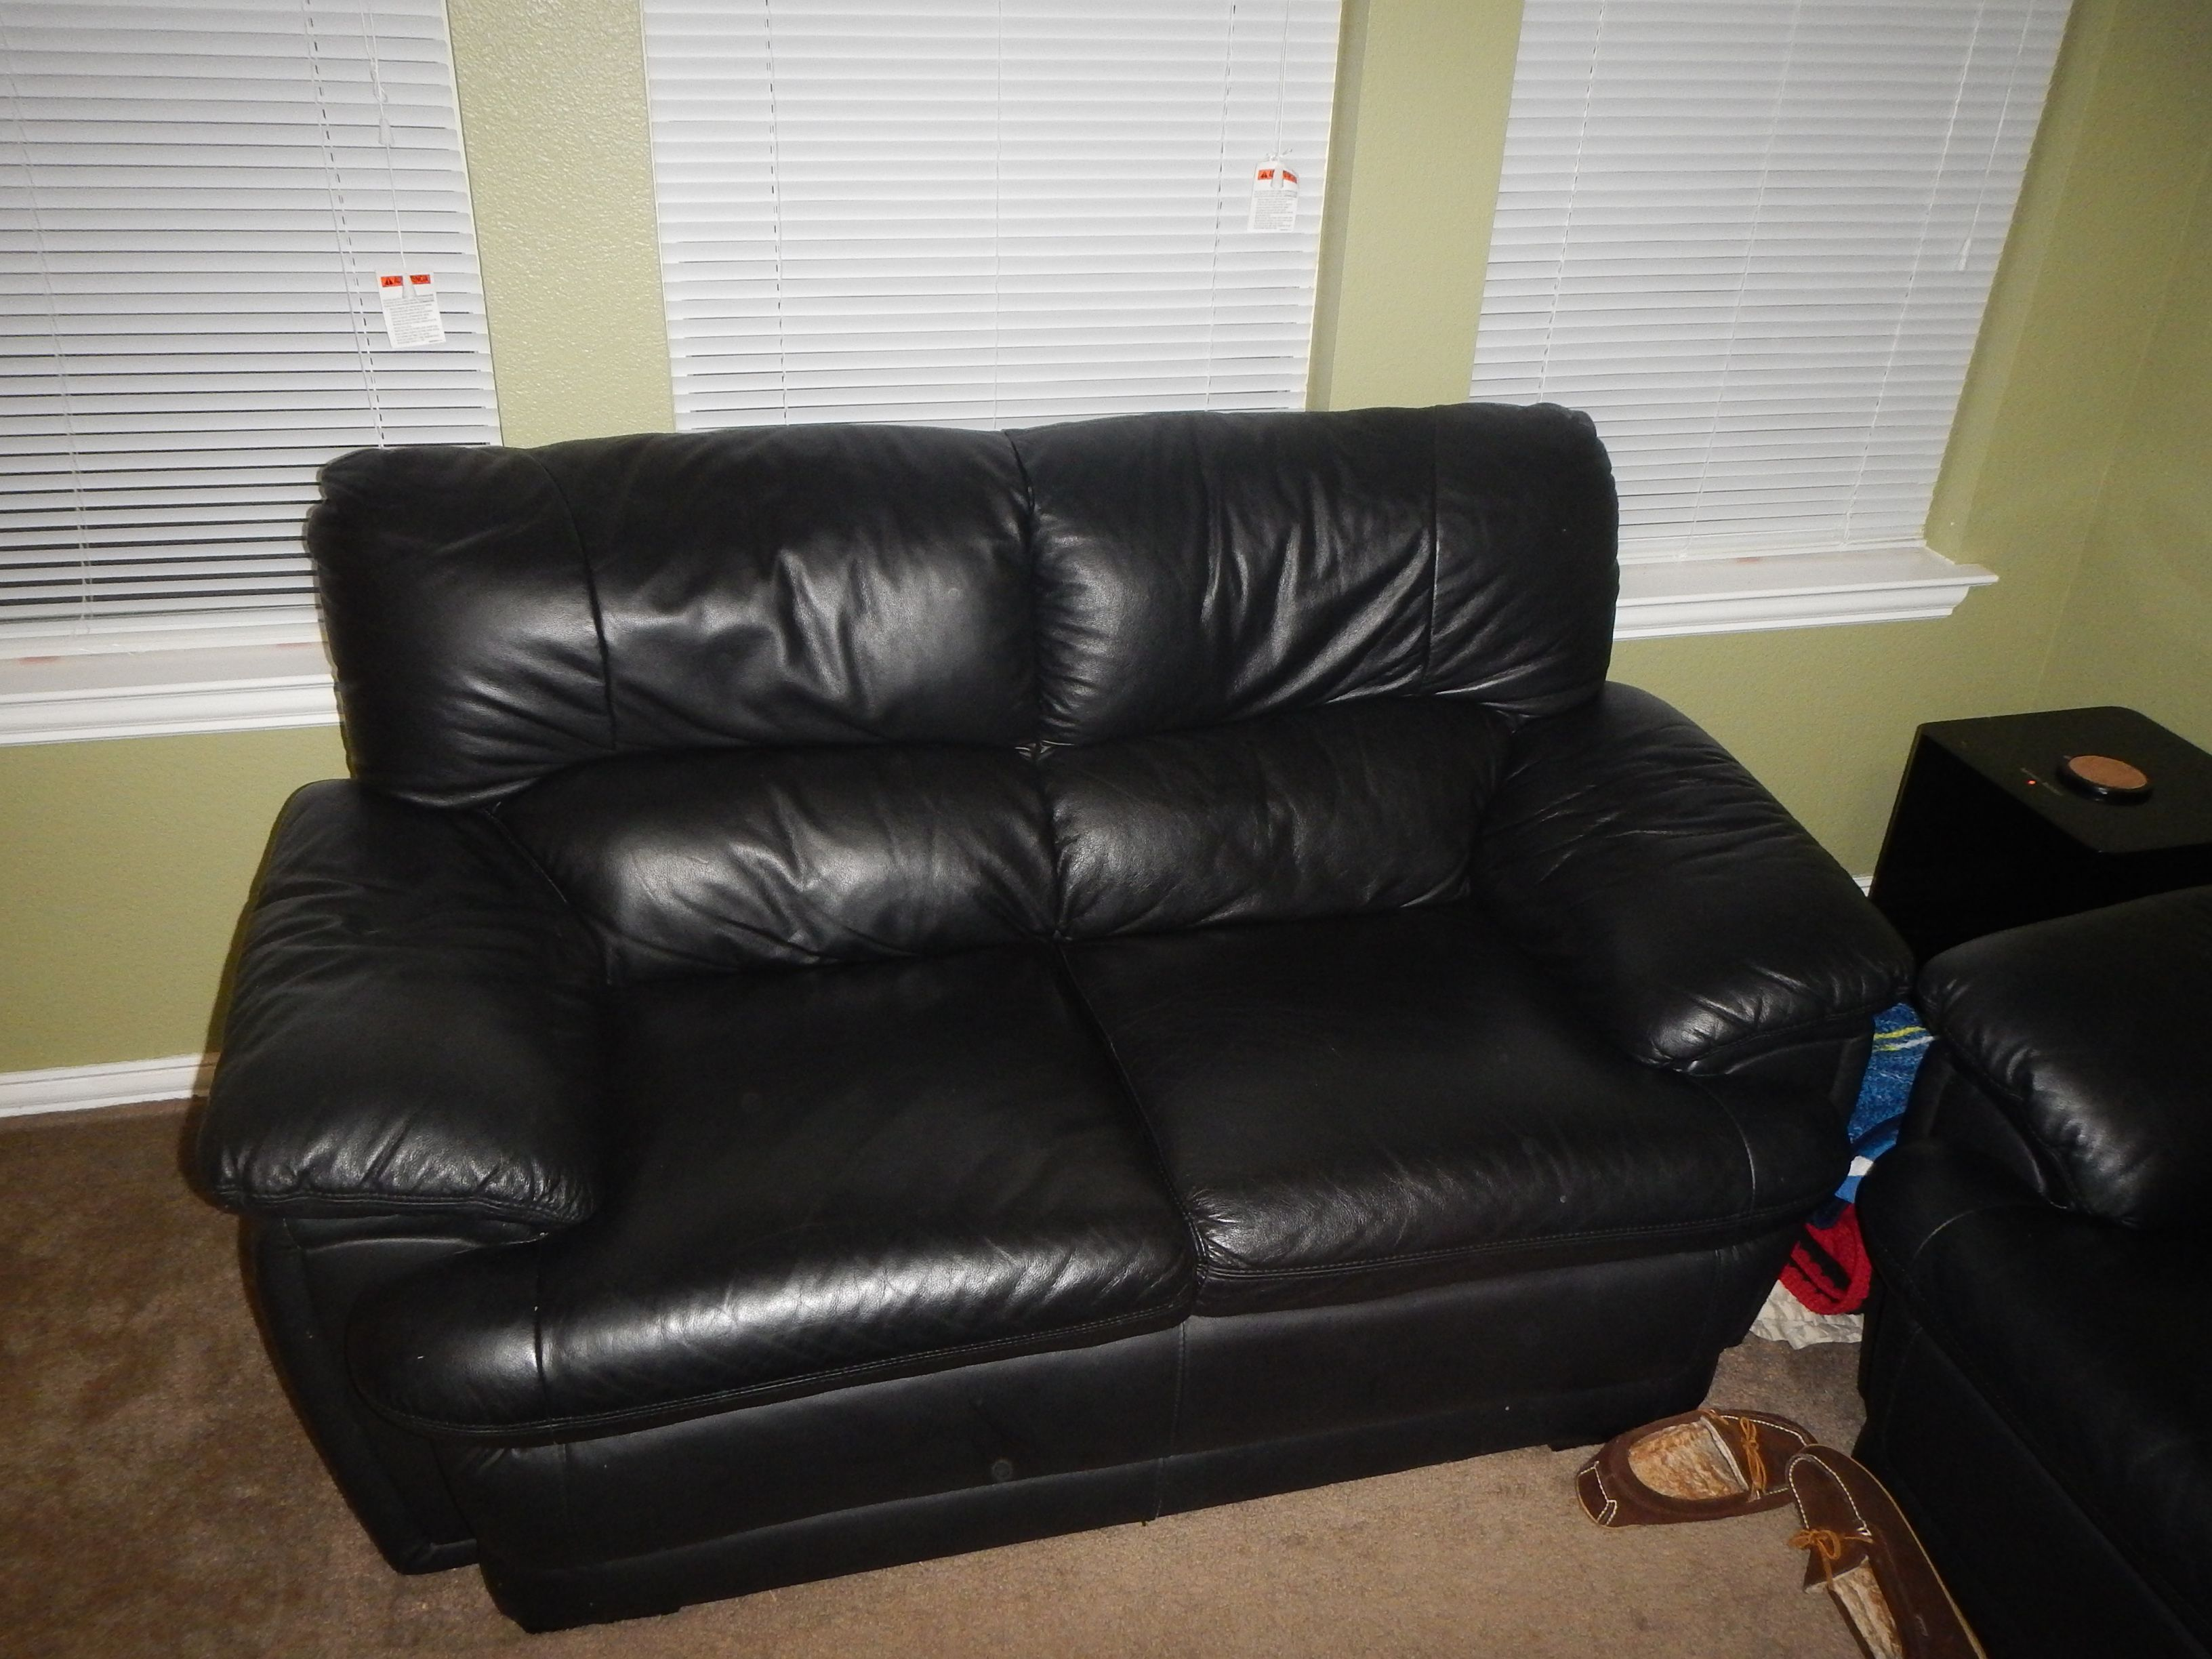 Leather Couch And Love Seat Black In Werner's Garage Sale In Alvarado , TX  For $500.00